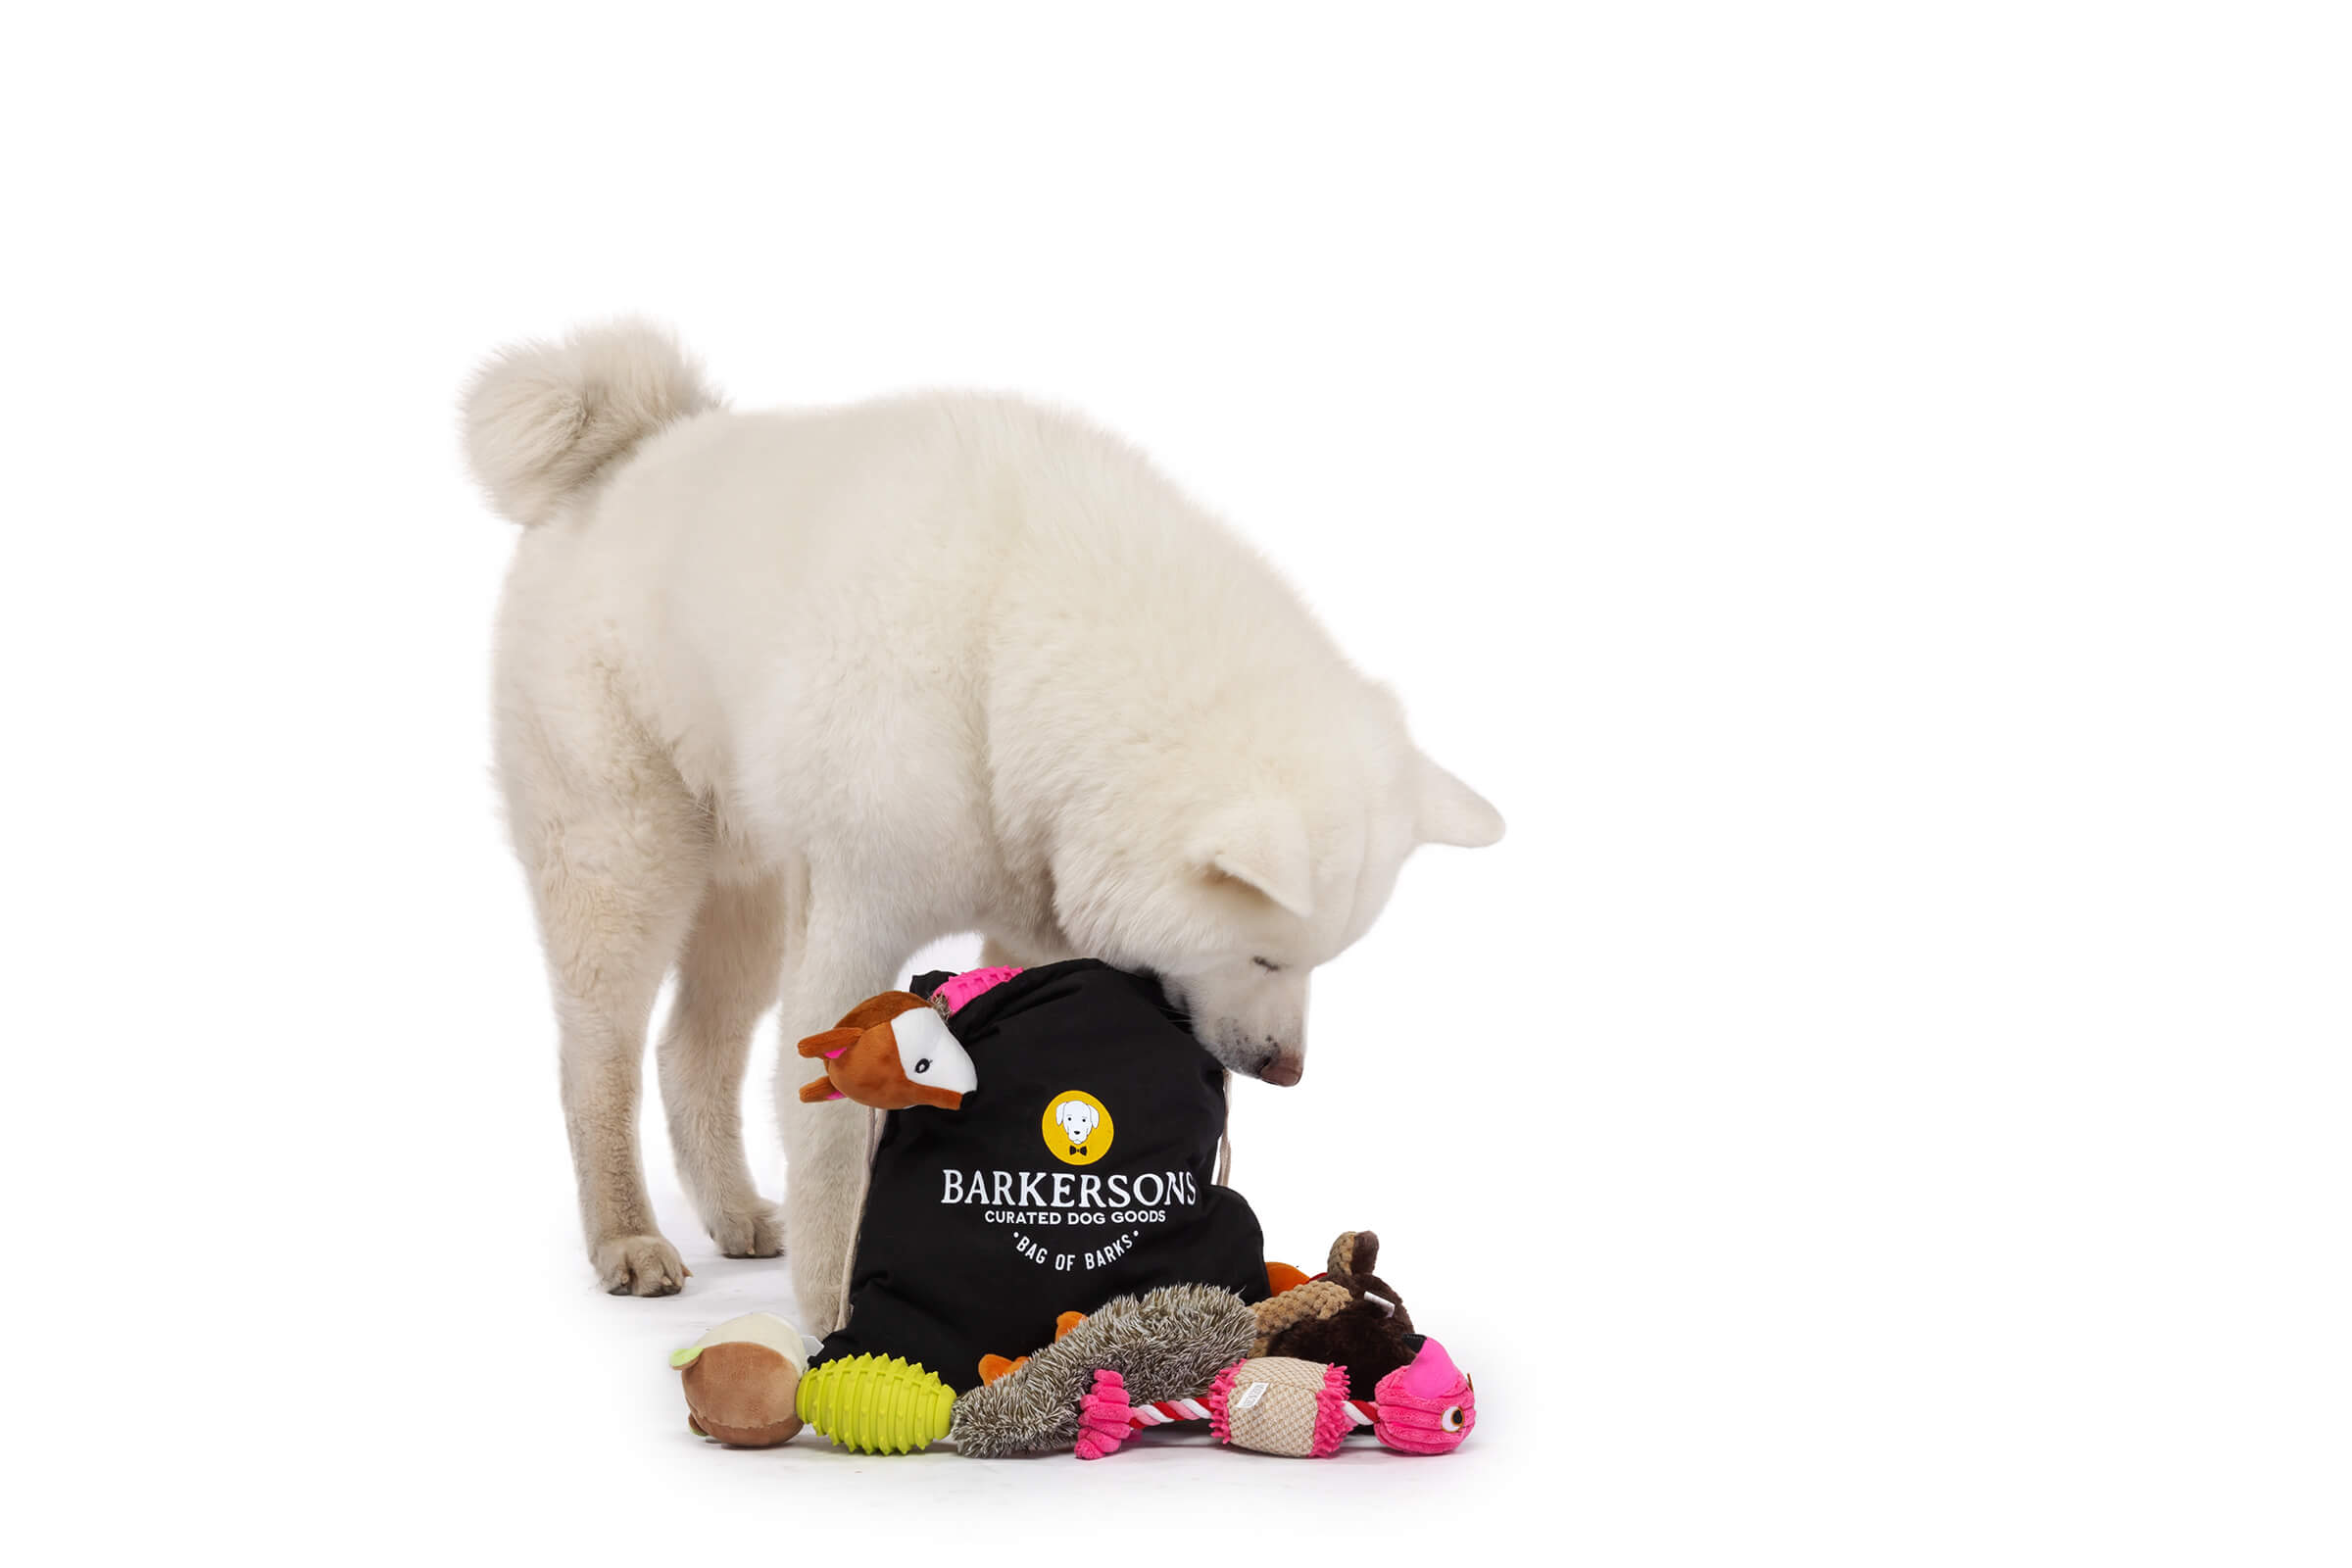 white dog playing with barkersons subscription box on white seamless